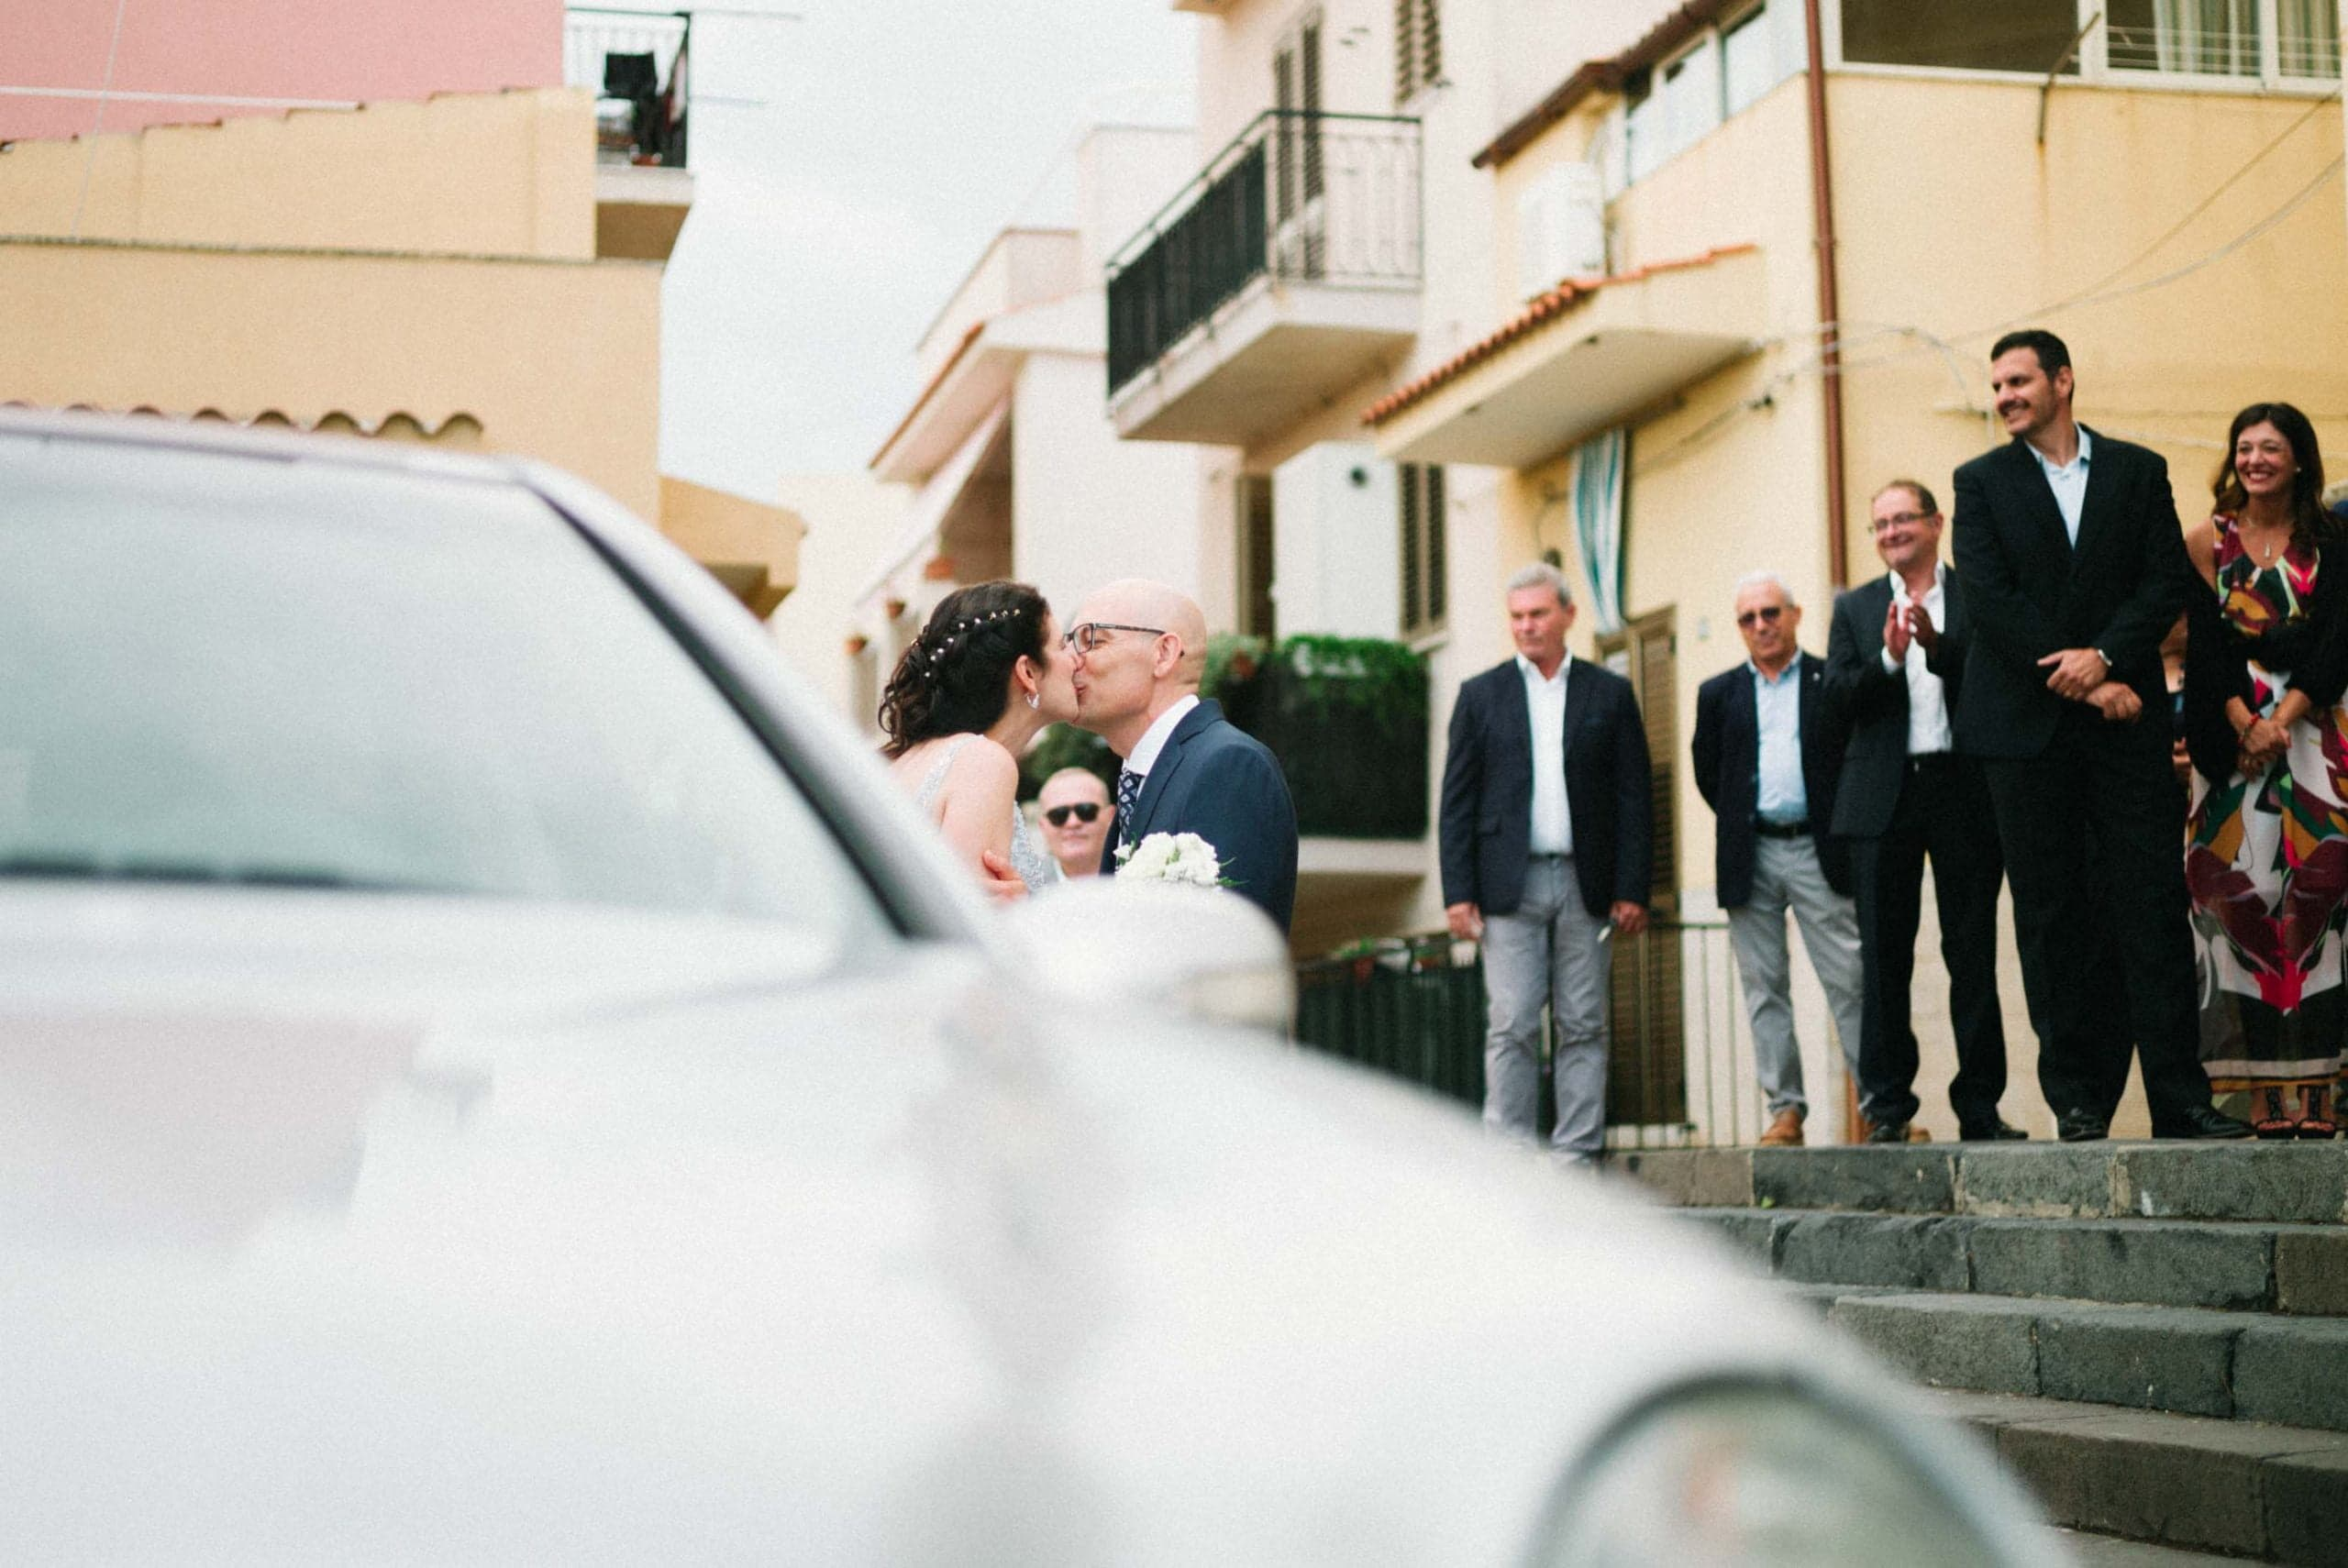 get married in Brucoli - glam